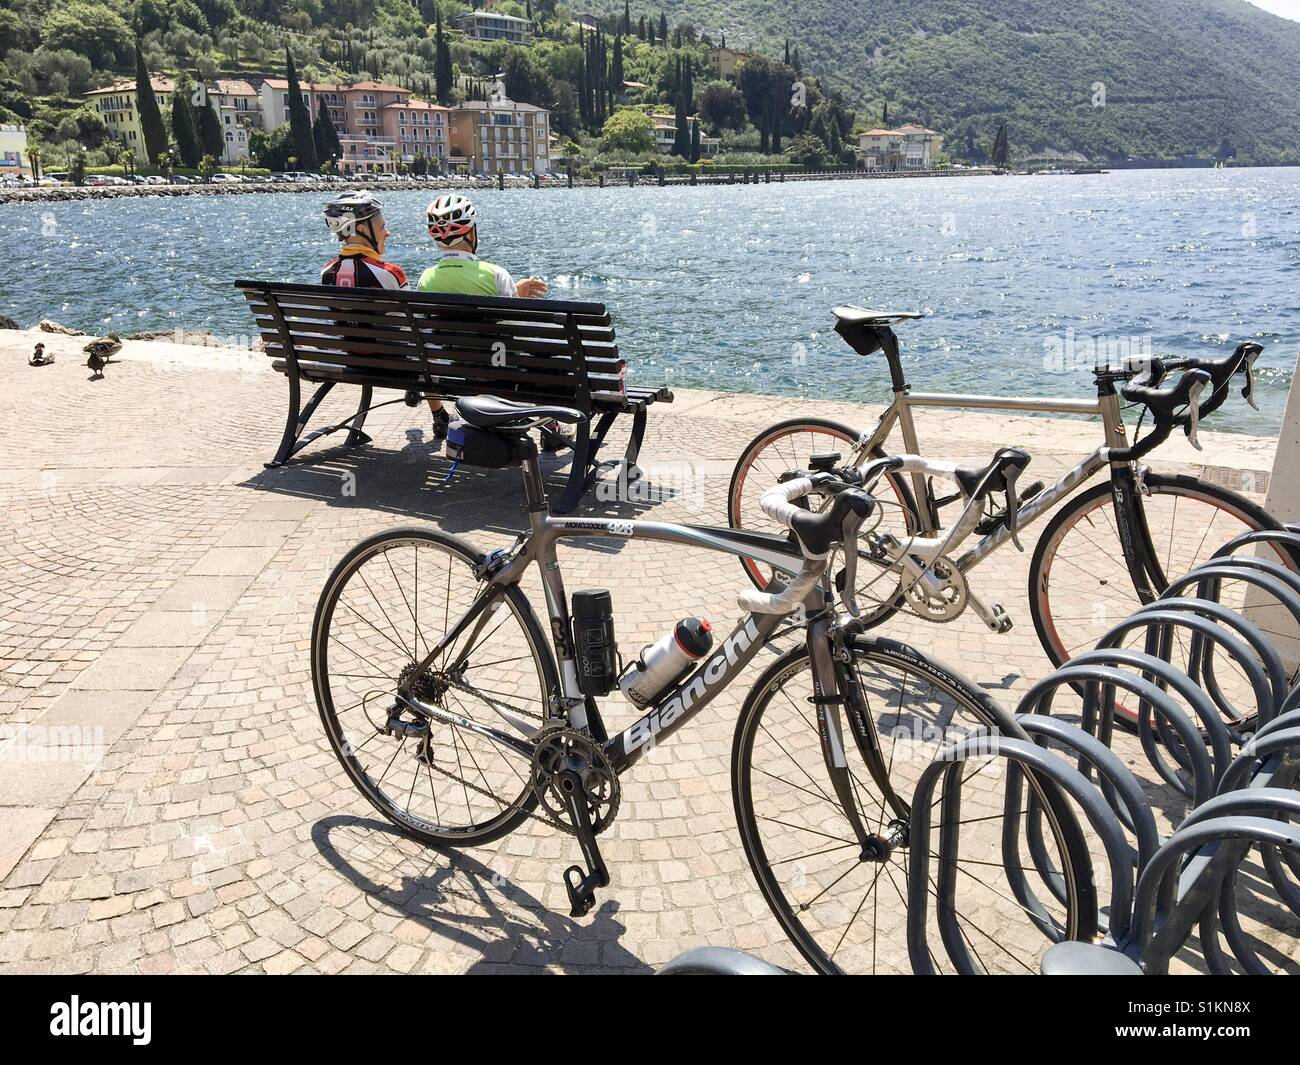 Torbole, Lake Garda, Italy- May 2017: Two cyclists take a well earned rest from their journey leaving their bikes - Stock Image